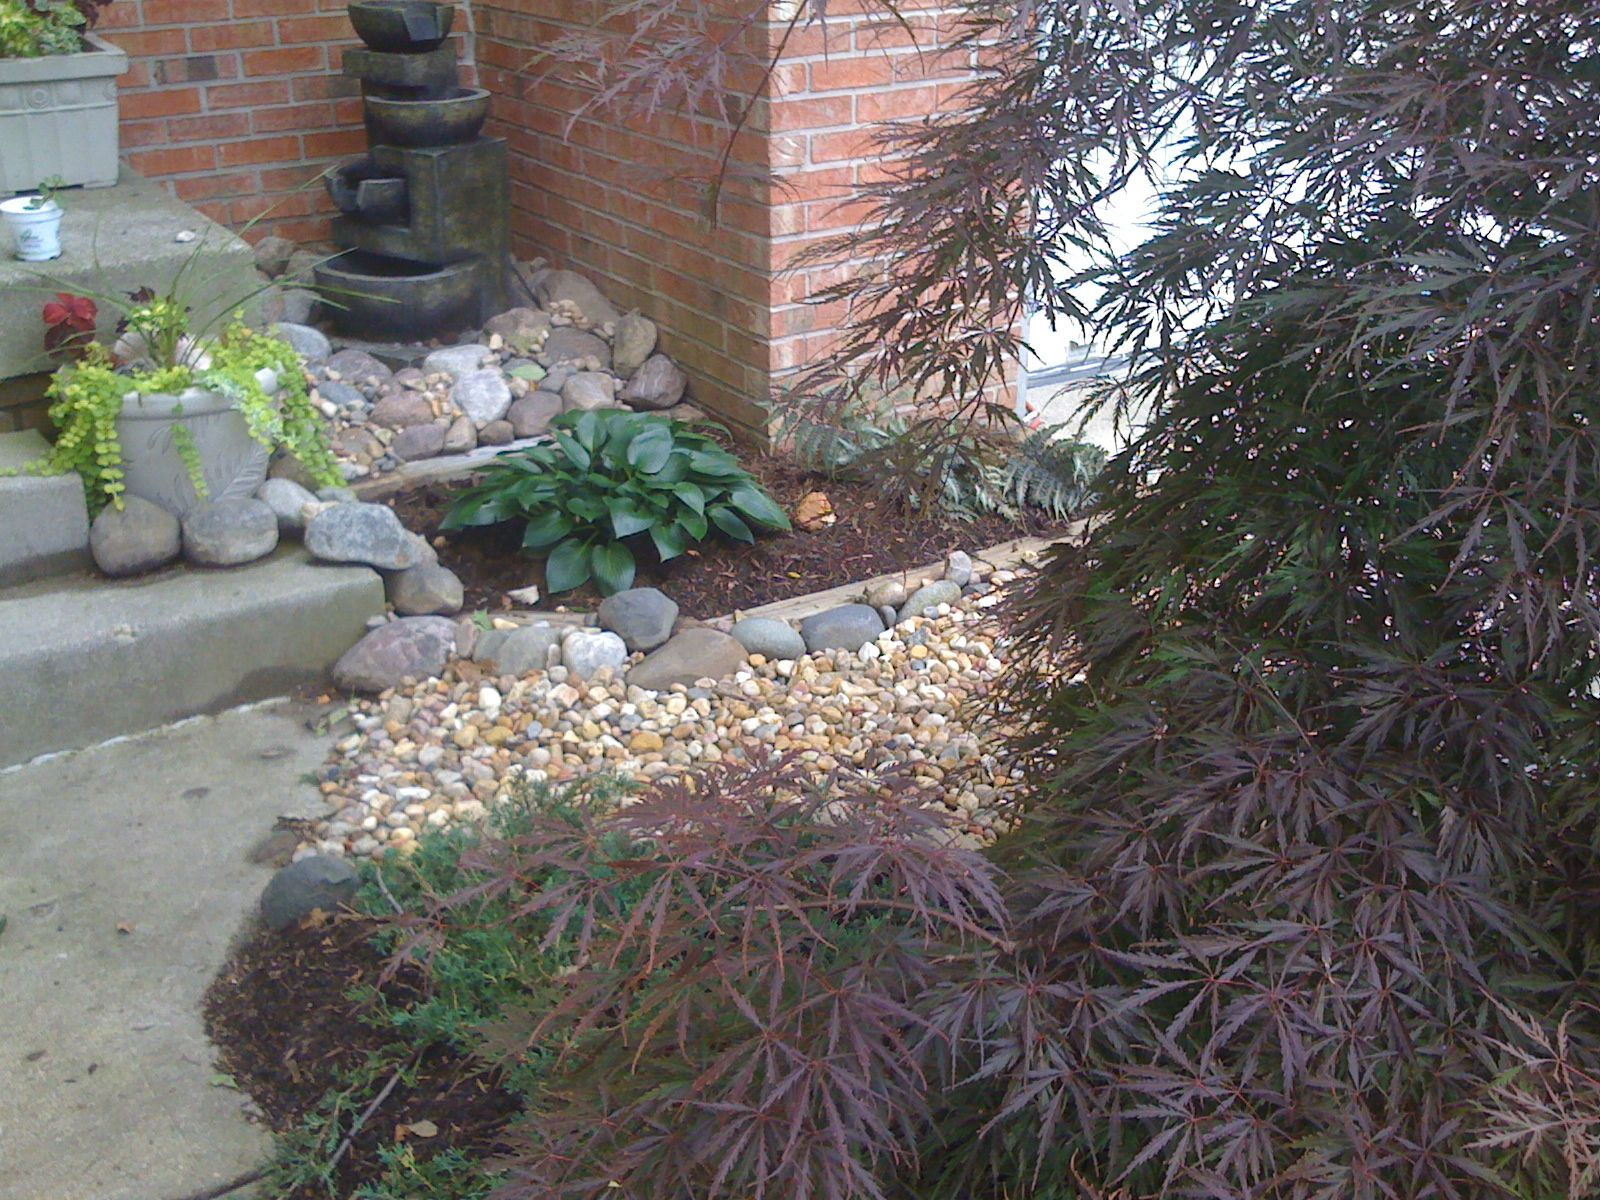 Landscaping details in very small spaces are fun and inexpensive